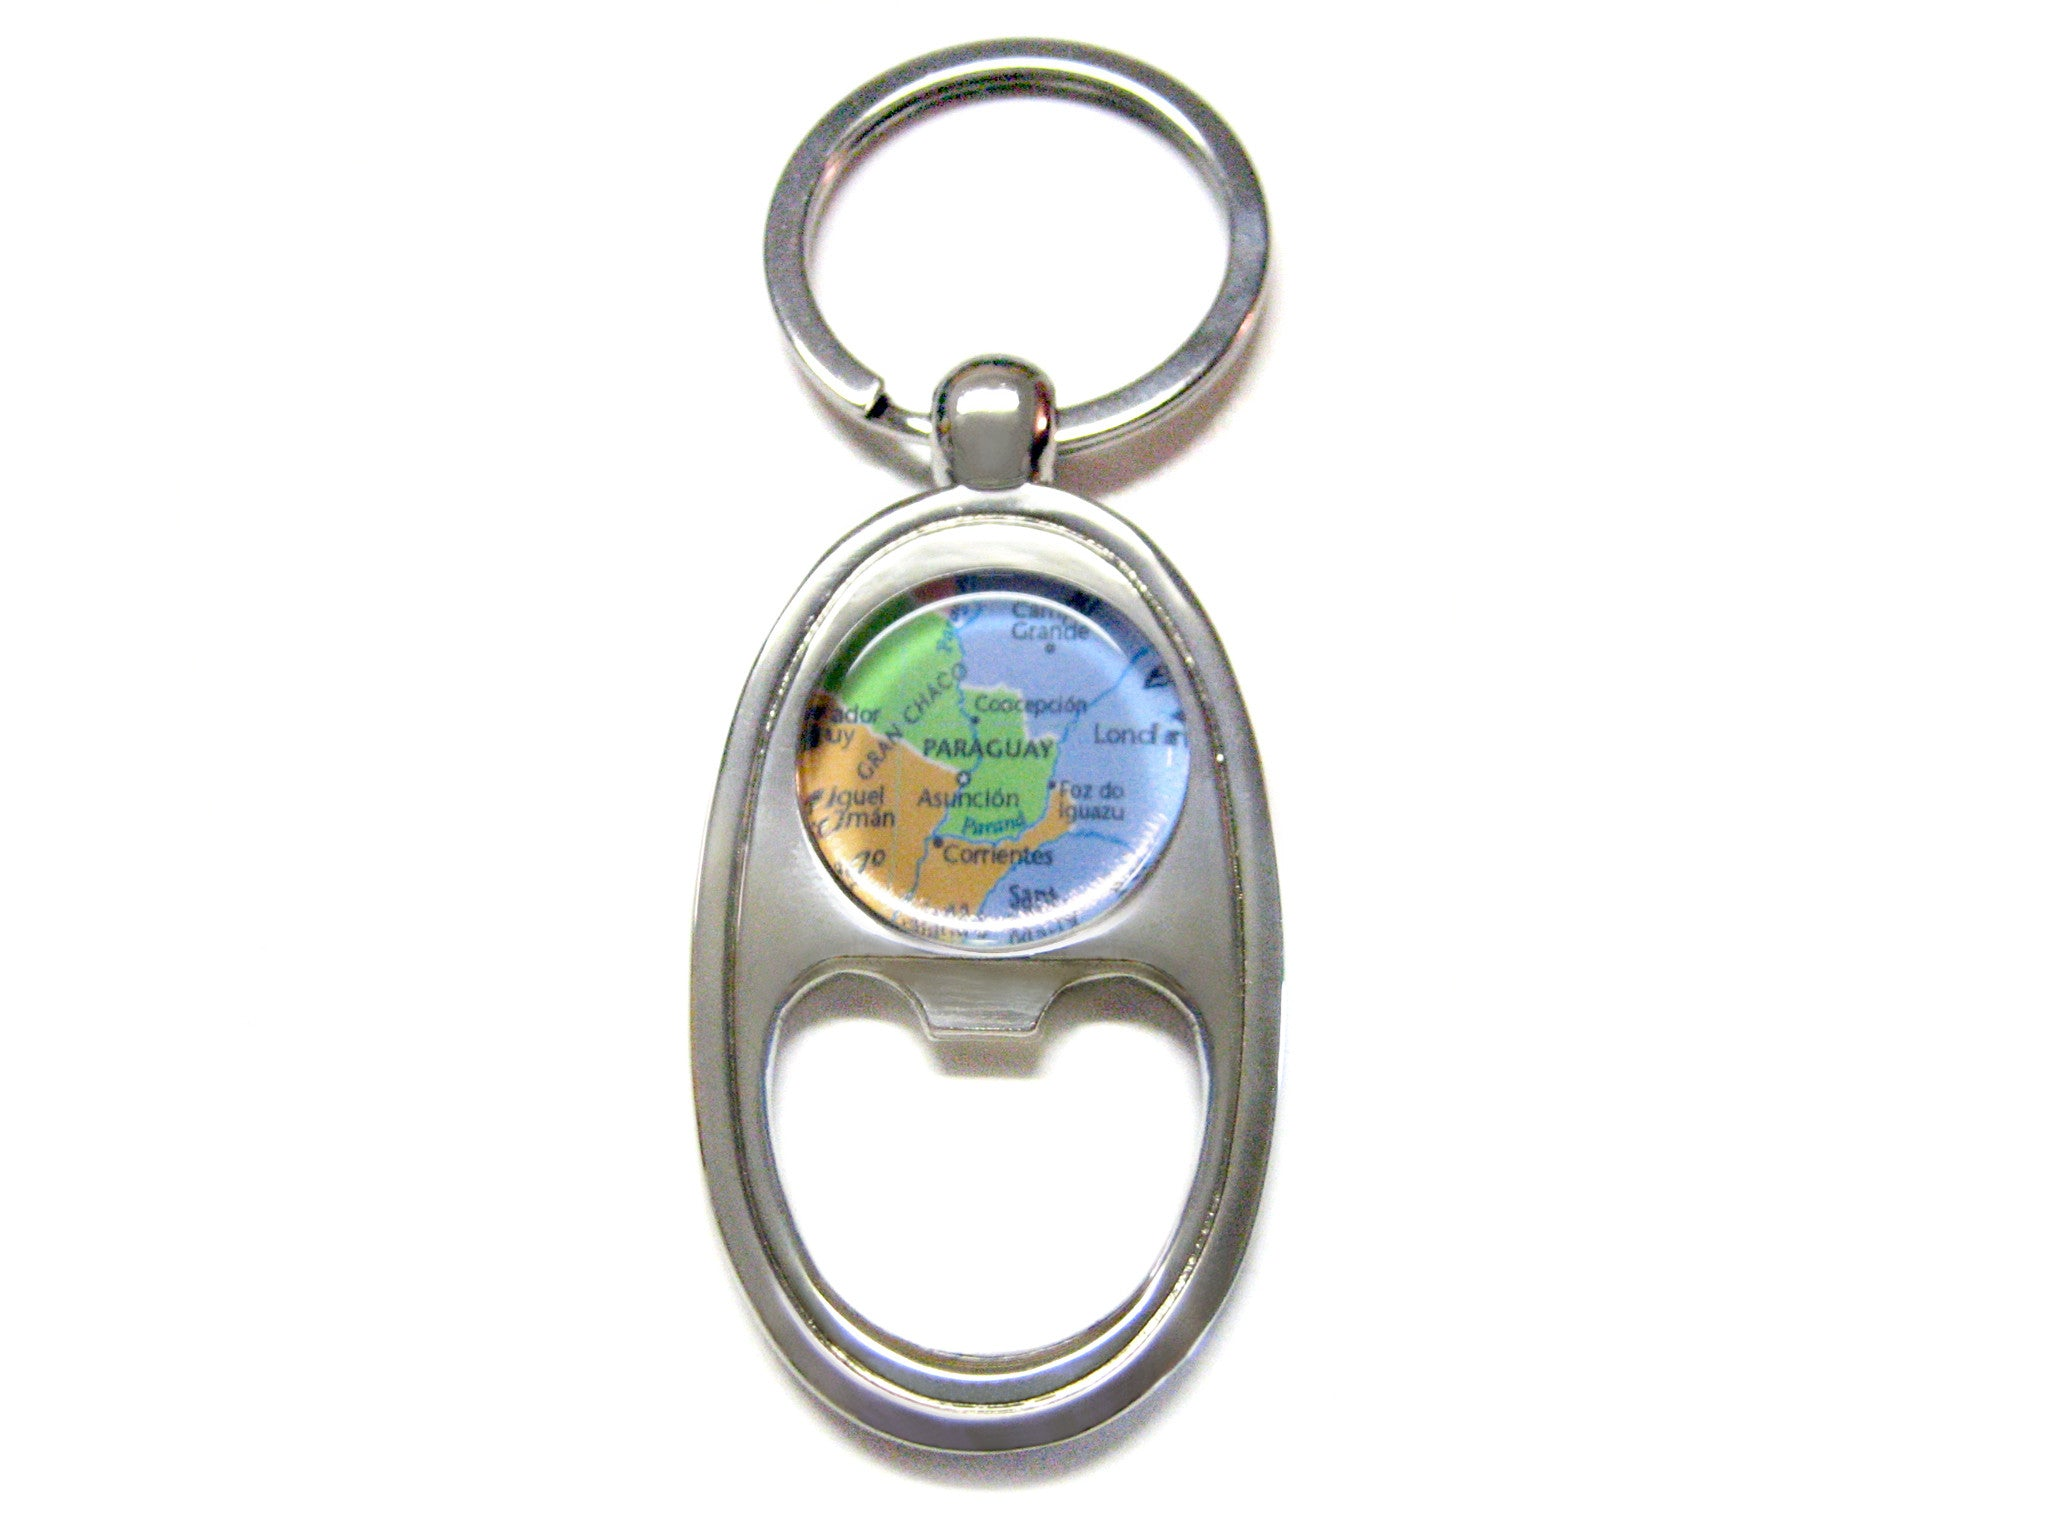 Paraguay Map Bottle Opener Key Chain